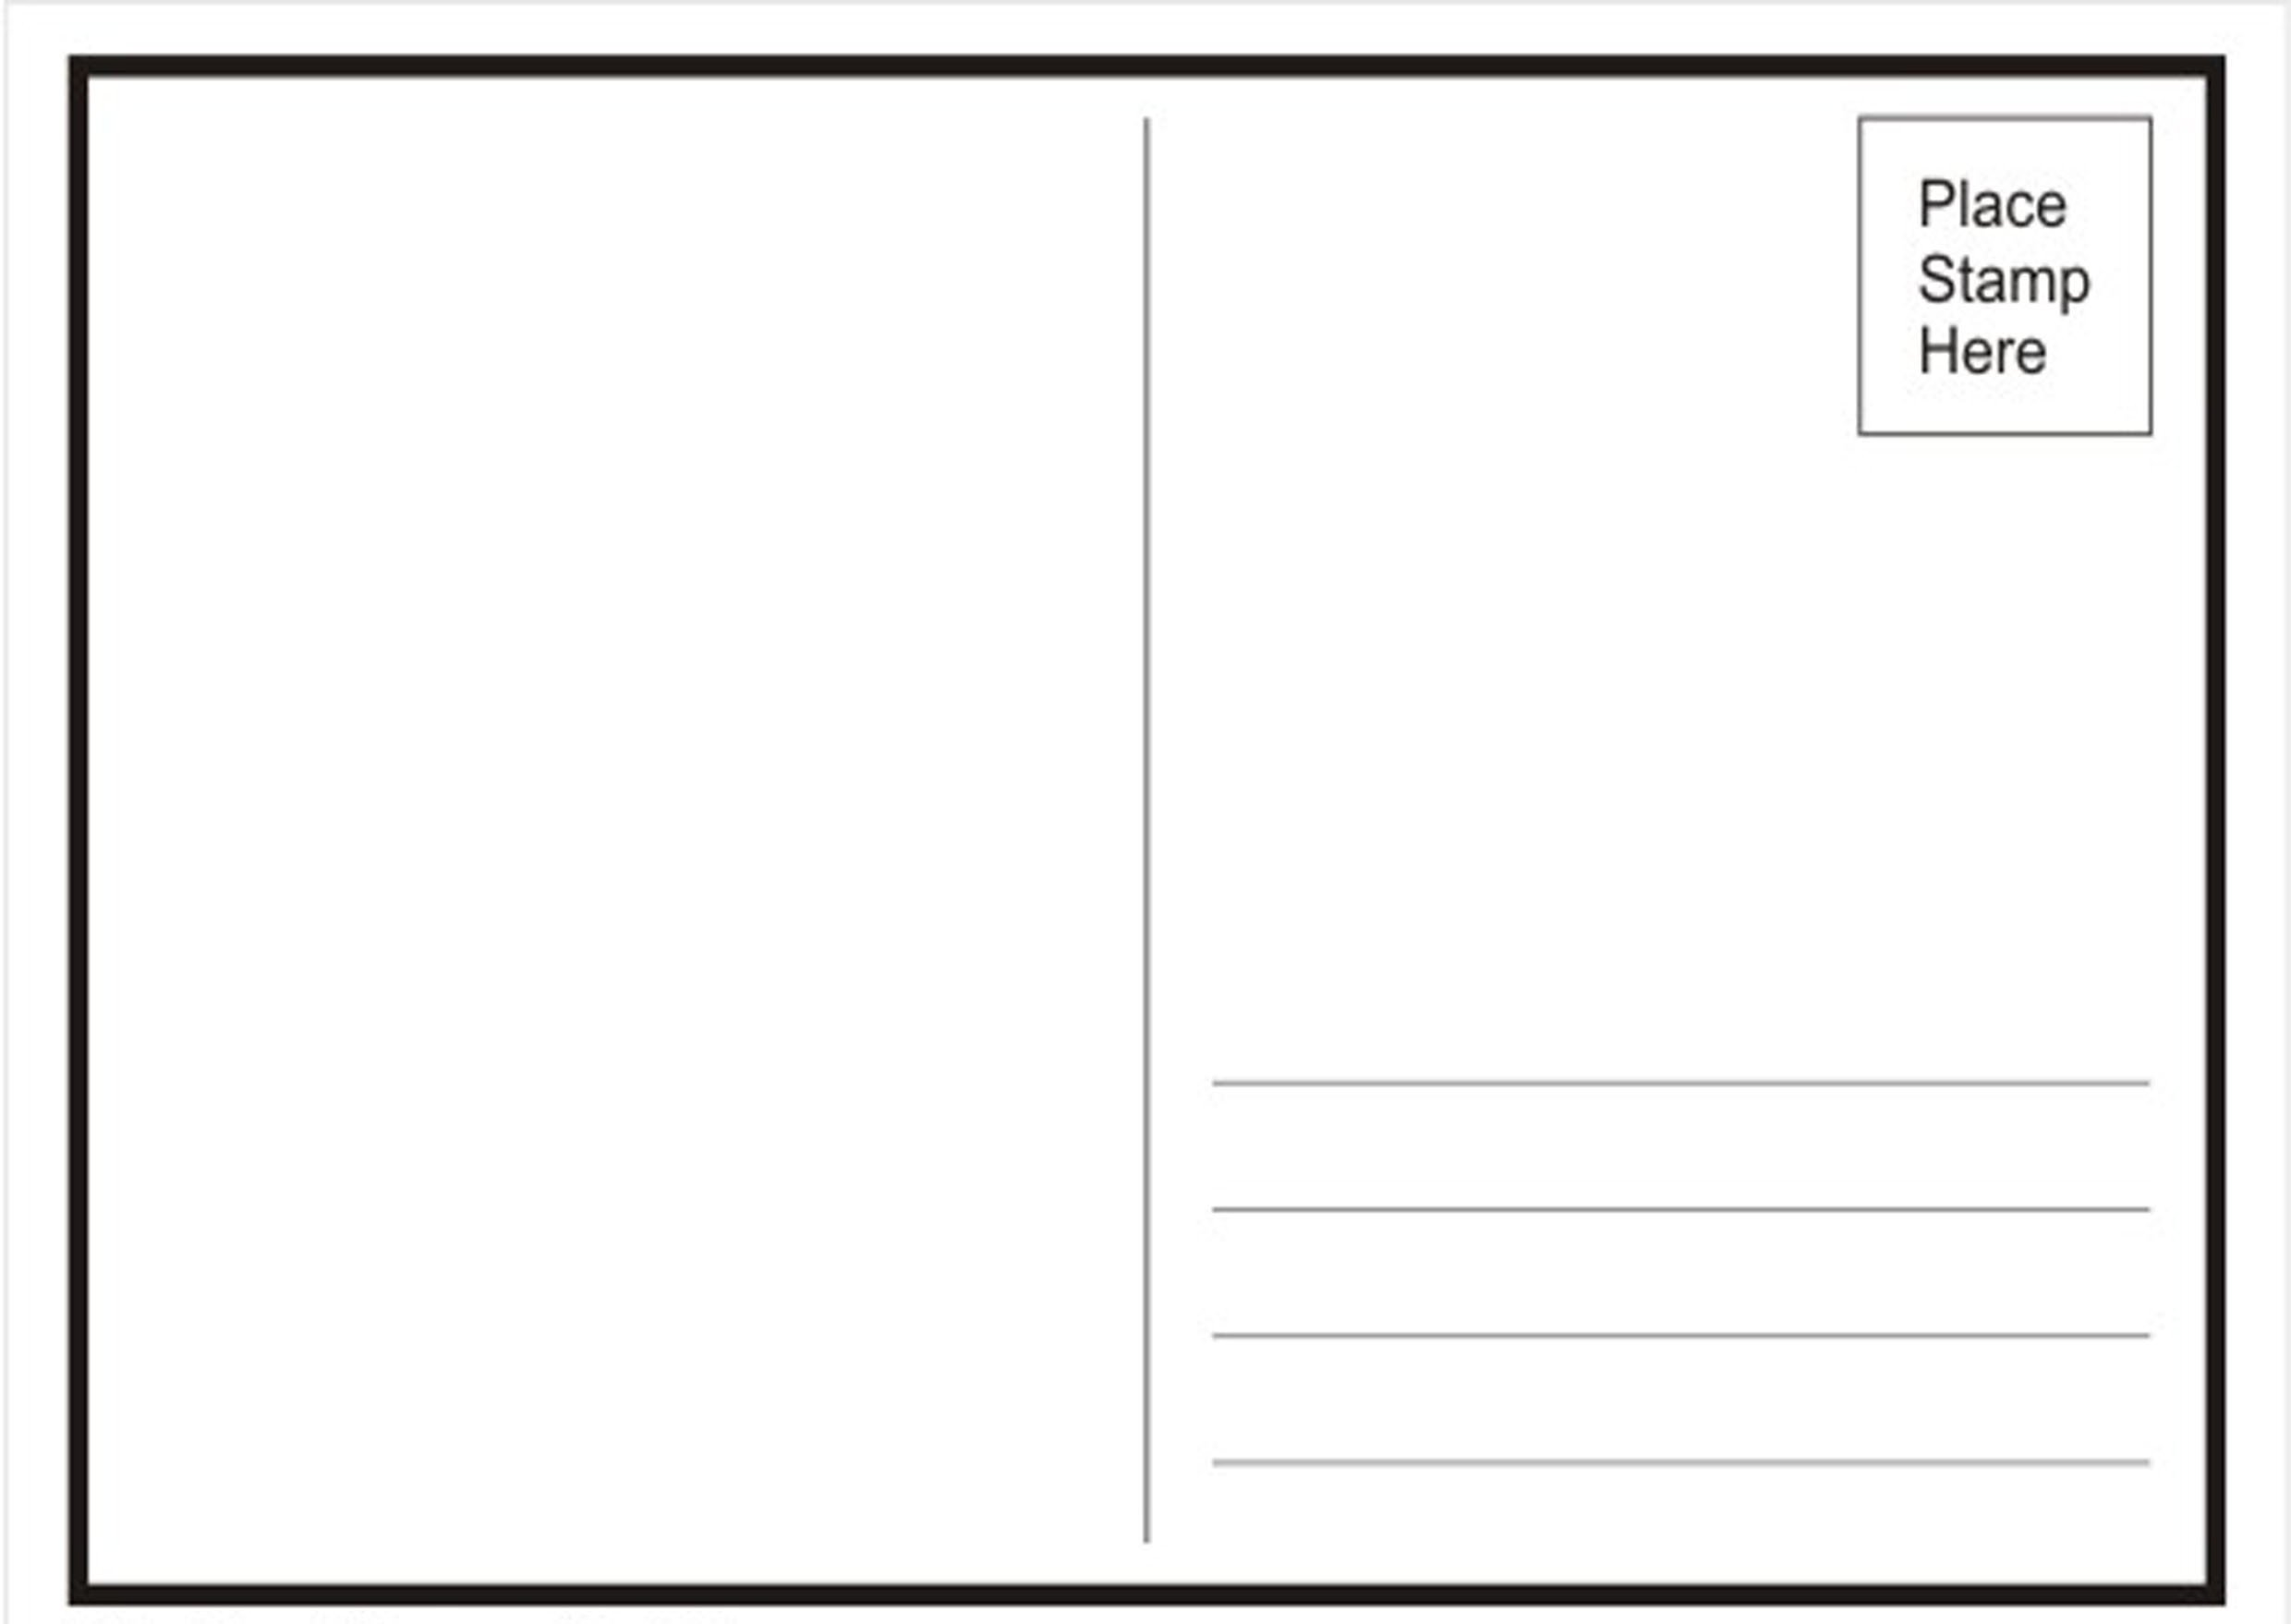 Postcard Templates for Word Alg Research Lorenashleigh